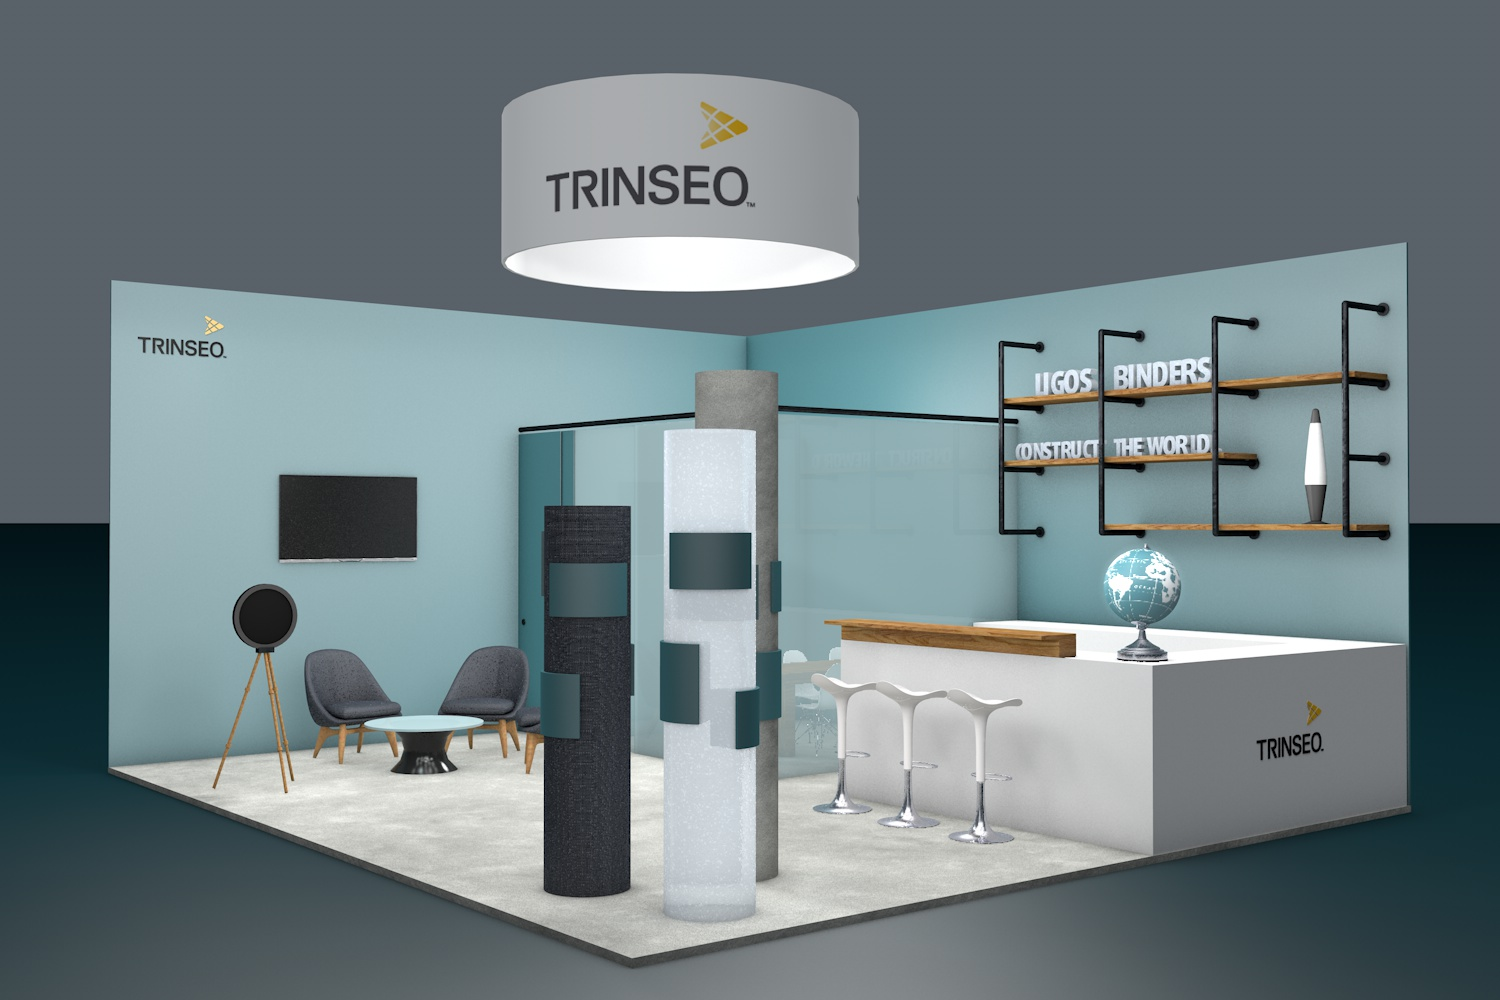 Trinseo is presenting its portfolio of latex binders for the adhesives and construction industry at ECS 2019 (Source: Trinseo)